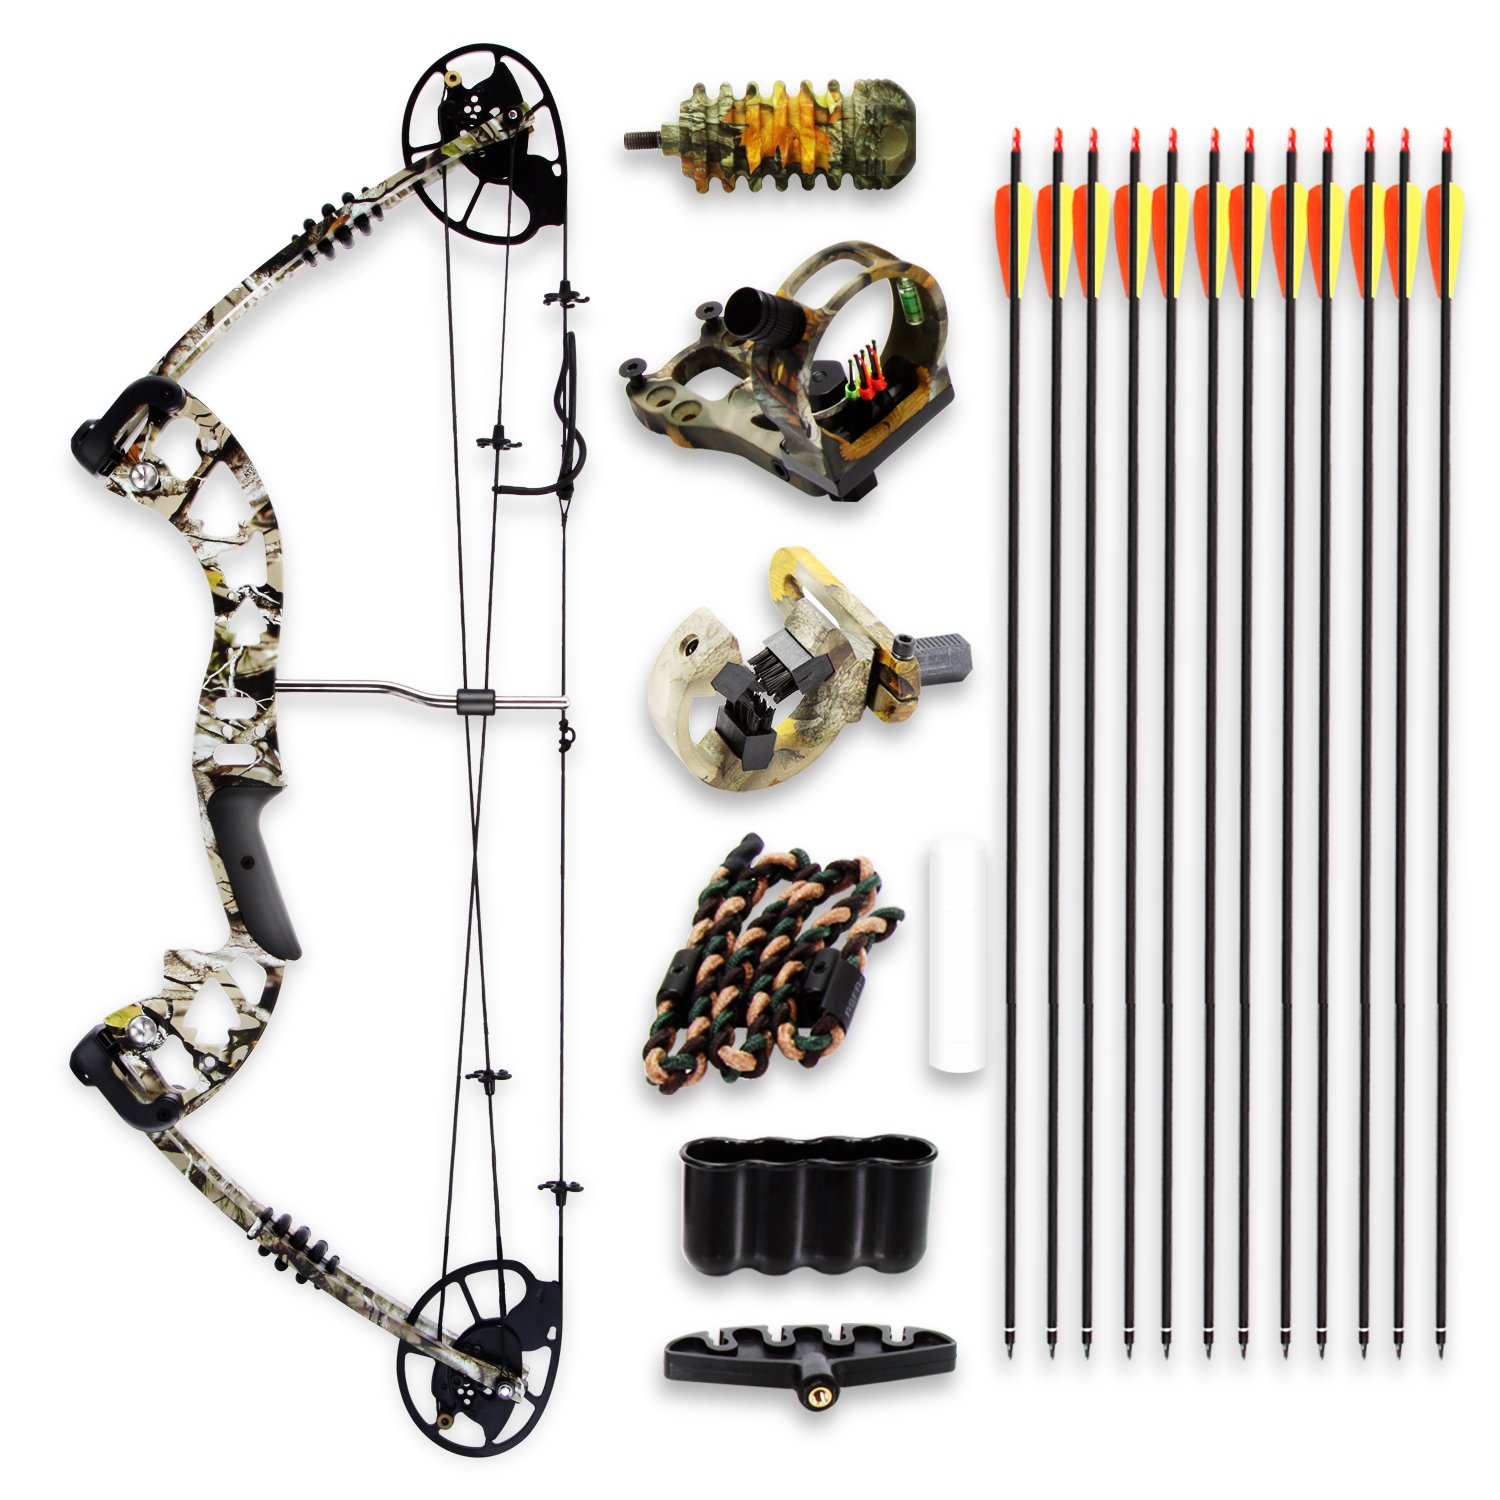 Camo Hunting Archery Compound Bow - 320 FPS Camoflauge Gear w/Fiberglass Limb, Peep Sight, 30-70 lbs Adjustable Draw Weight, 23.5''-30.5'' Length, Metal Riser 4 String Silencers - SereneLife by SereneLife